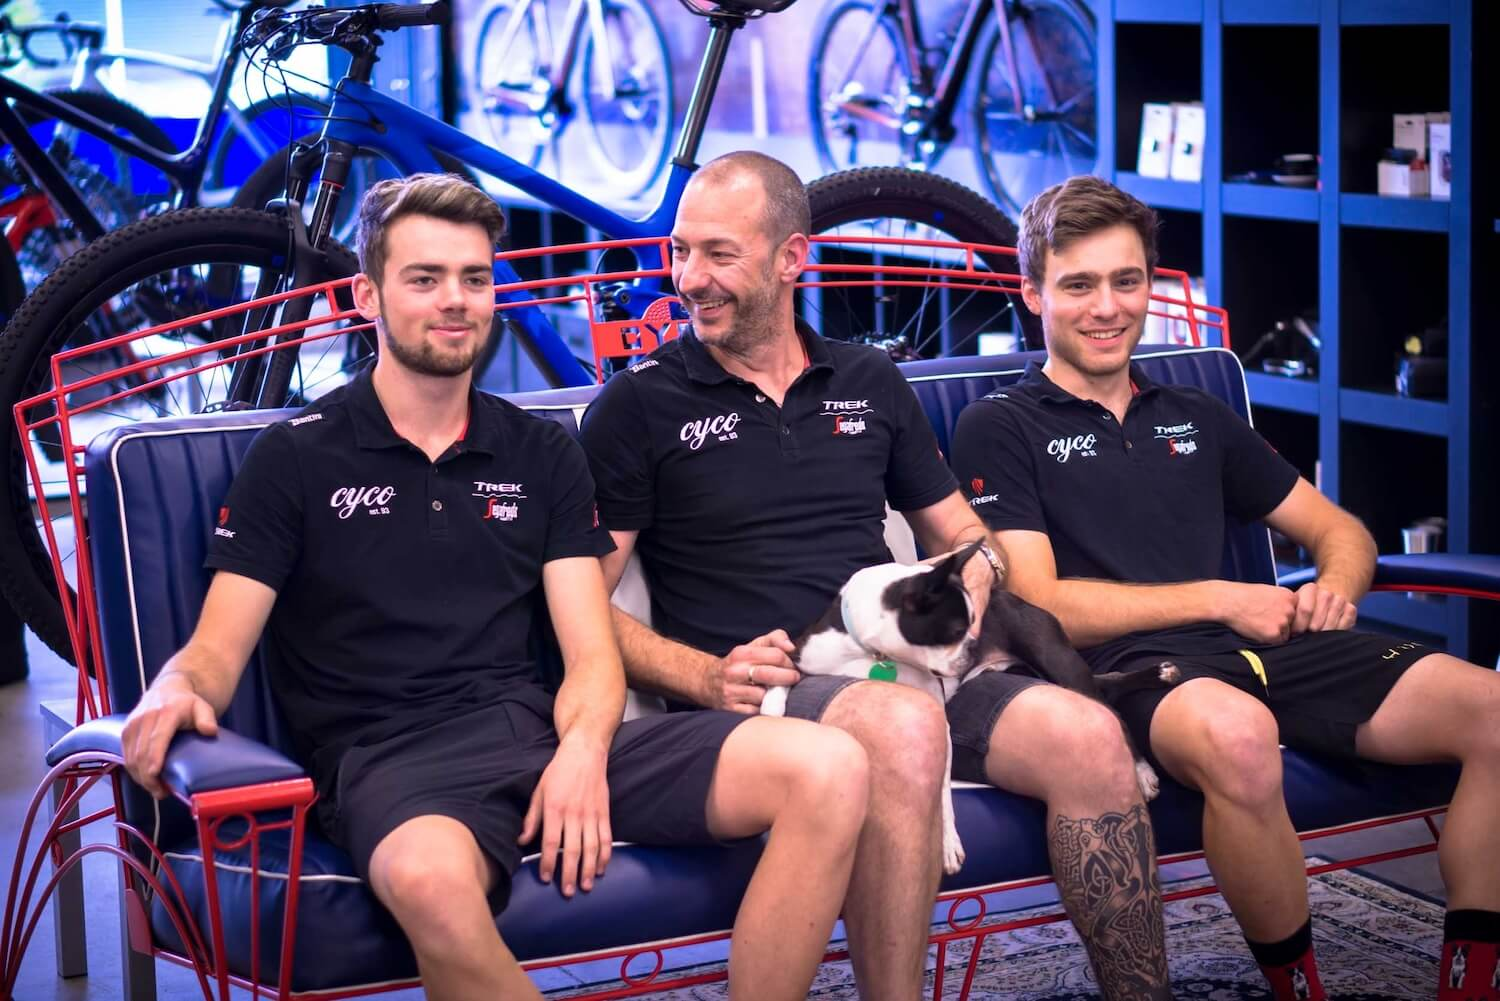 Three employees of bike shop sitting on sofa smiling